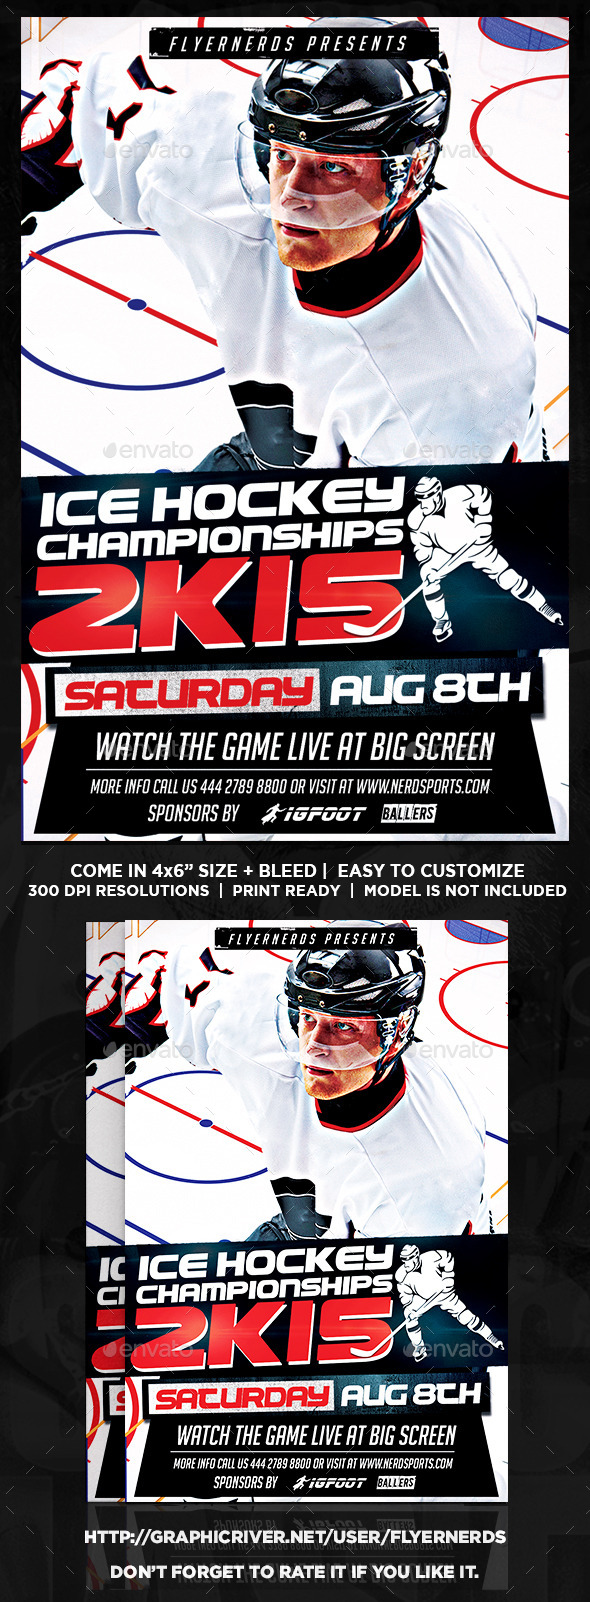 GraphicRiver Ice Hockey Championships 2K15 Sports Flyer 11952040